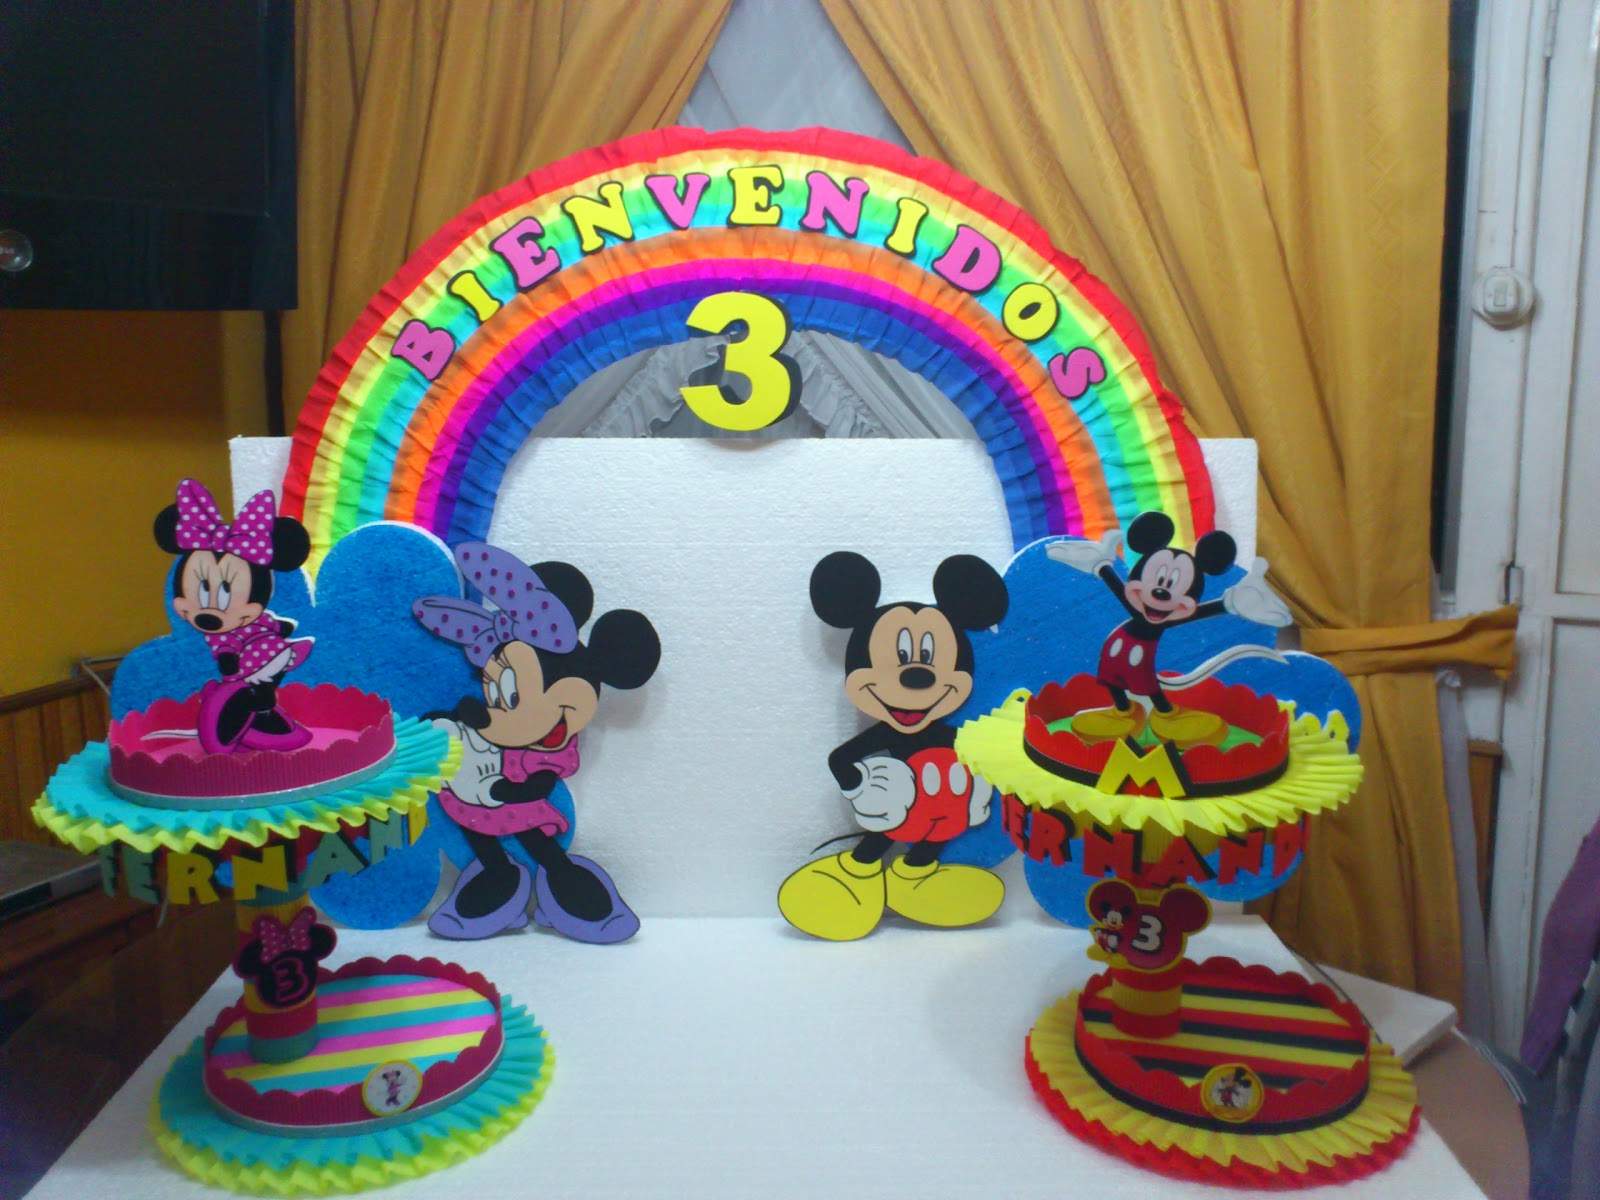 Decoraciones para fiestas infantiles de minnie mouse and for Decoracion bebe